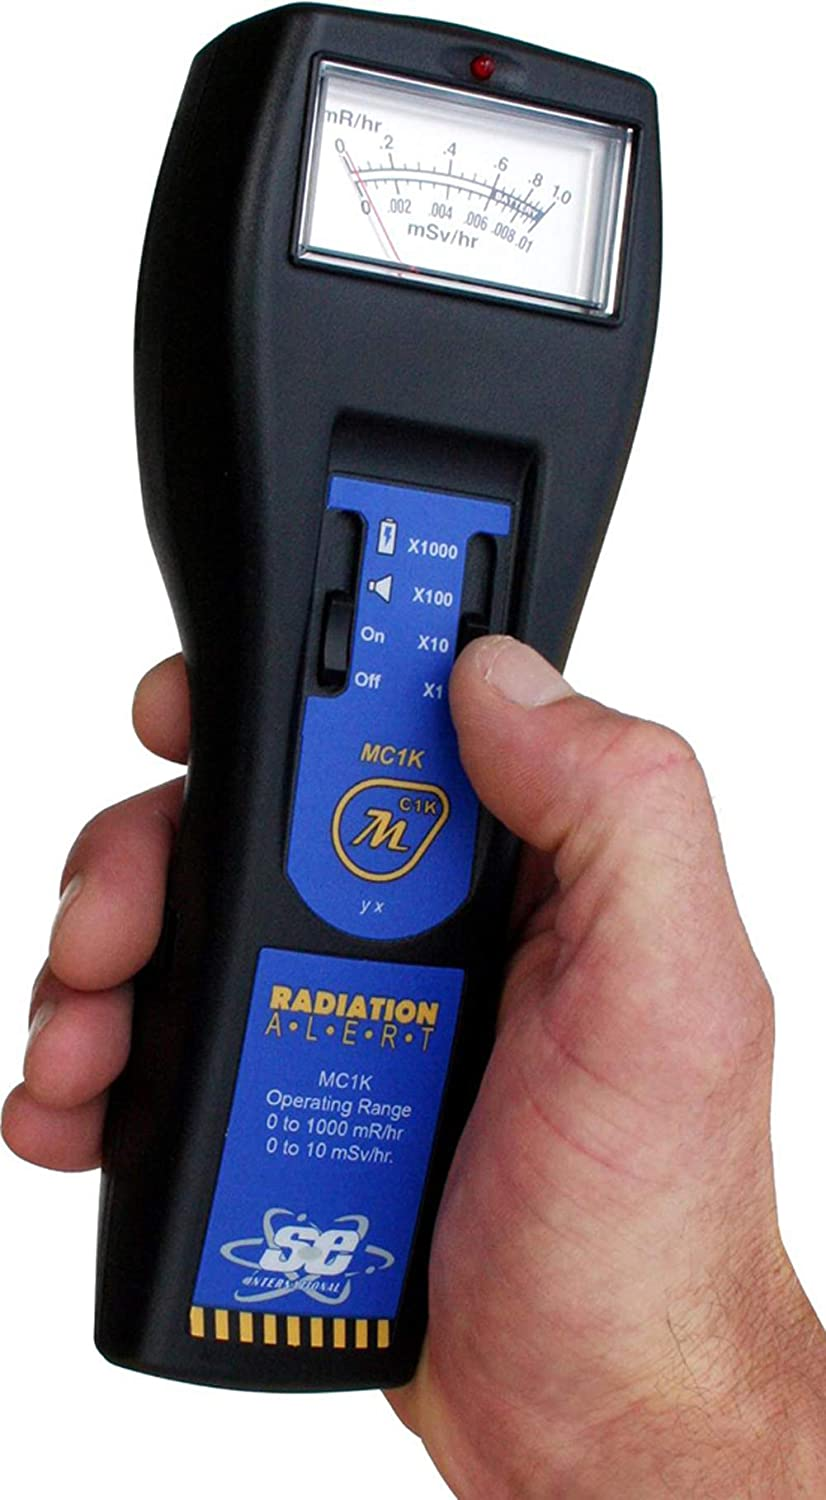 Radiation Alert MC1K High Range Analog-Based Ionizing ...